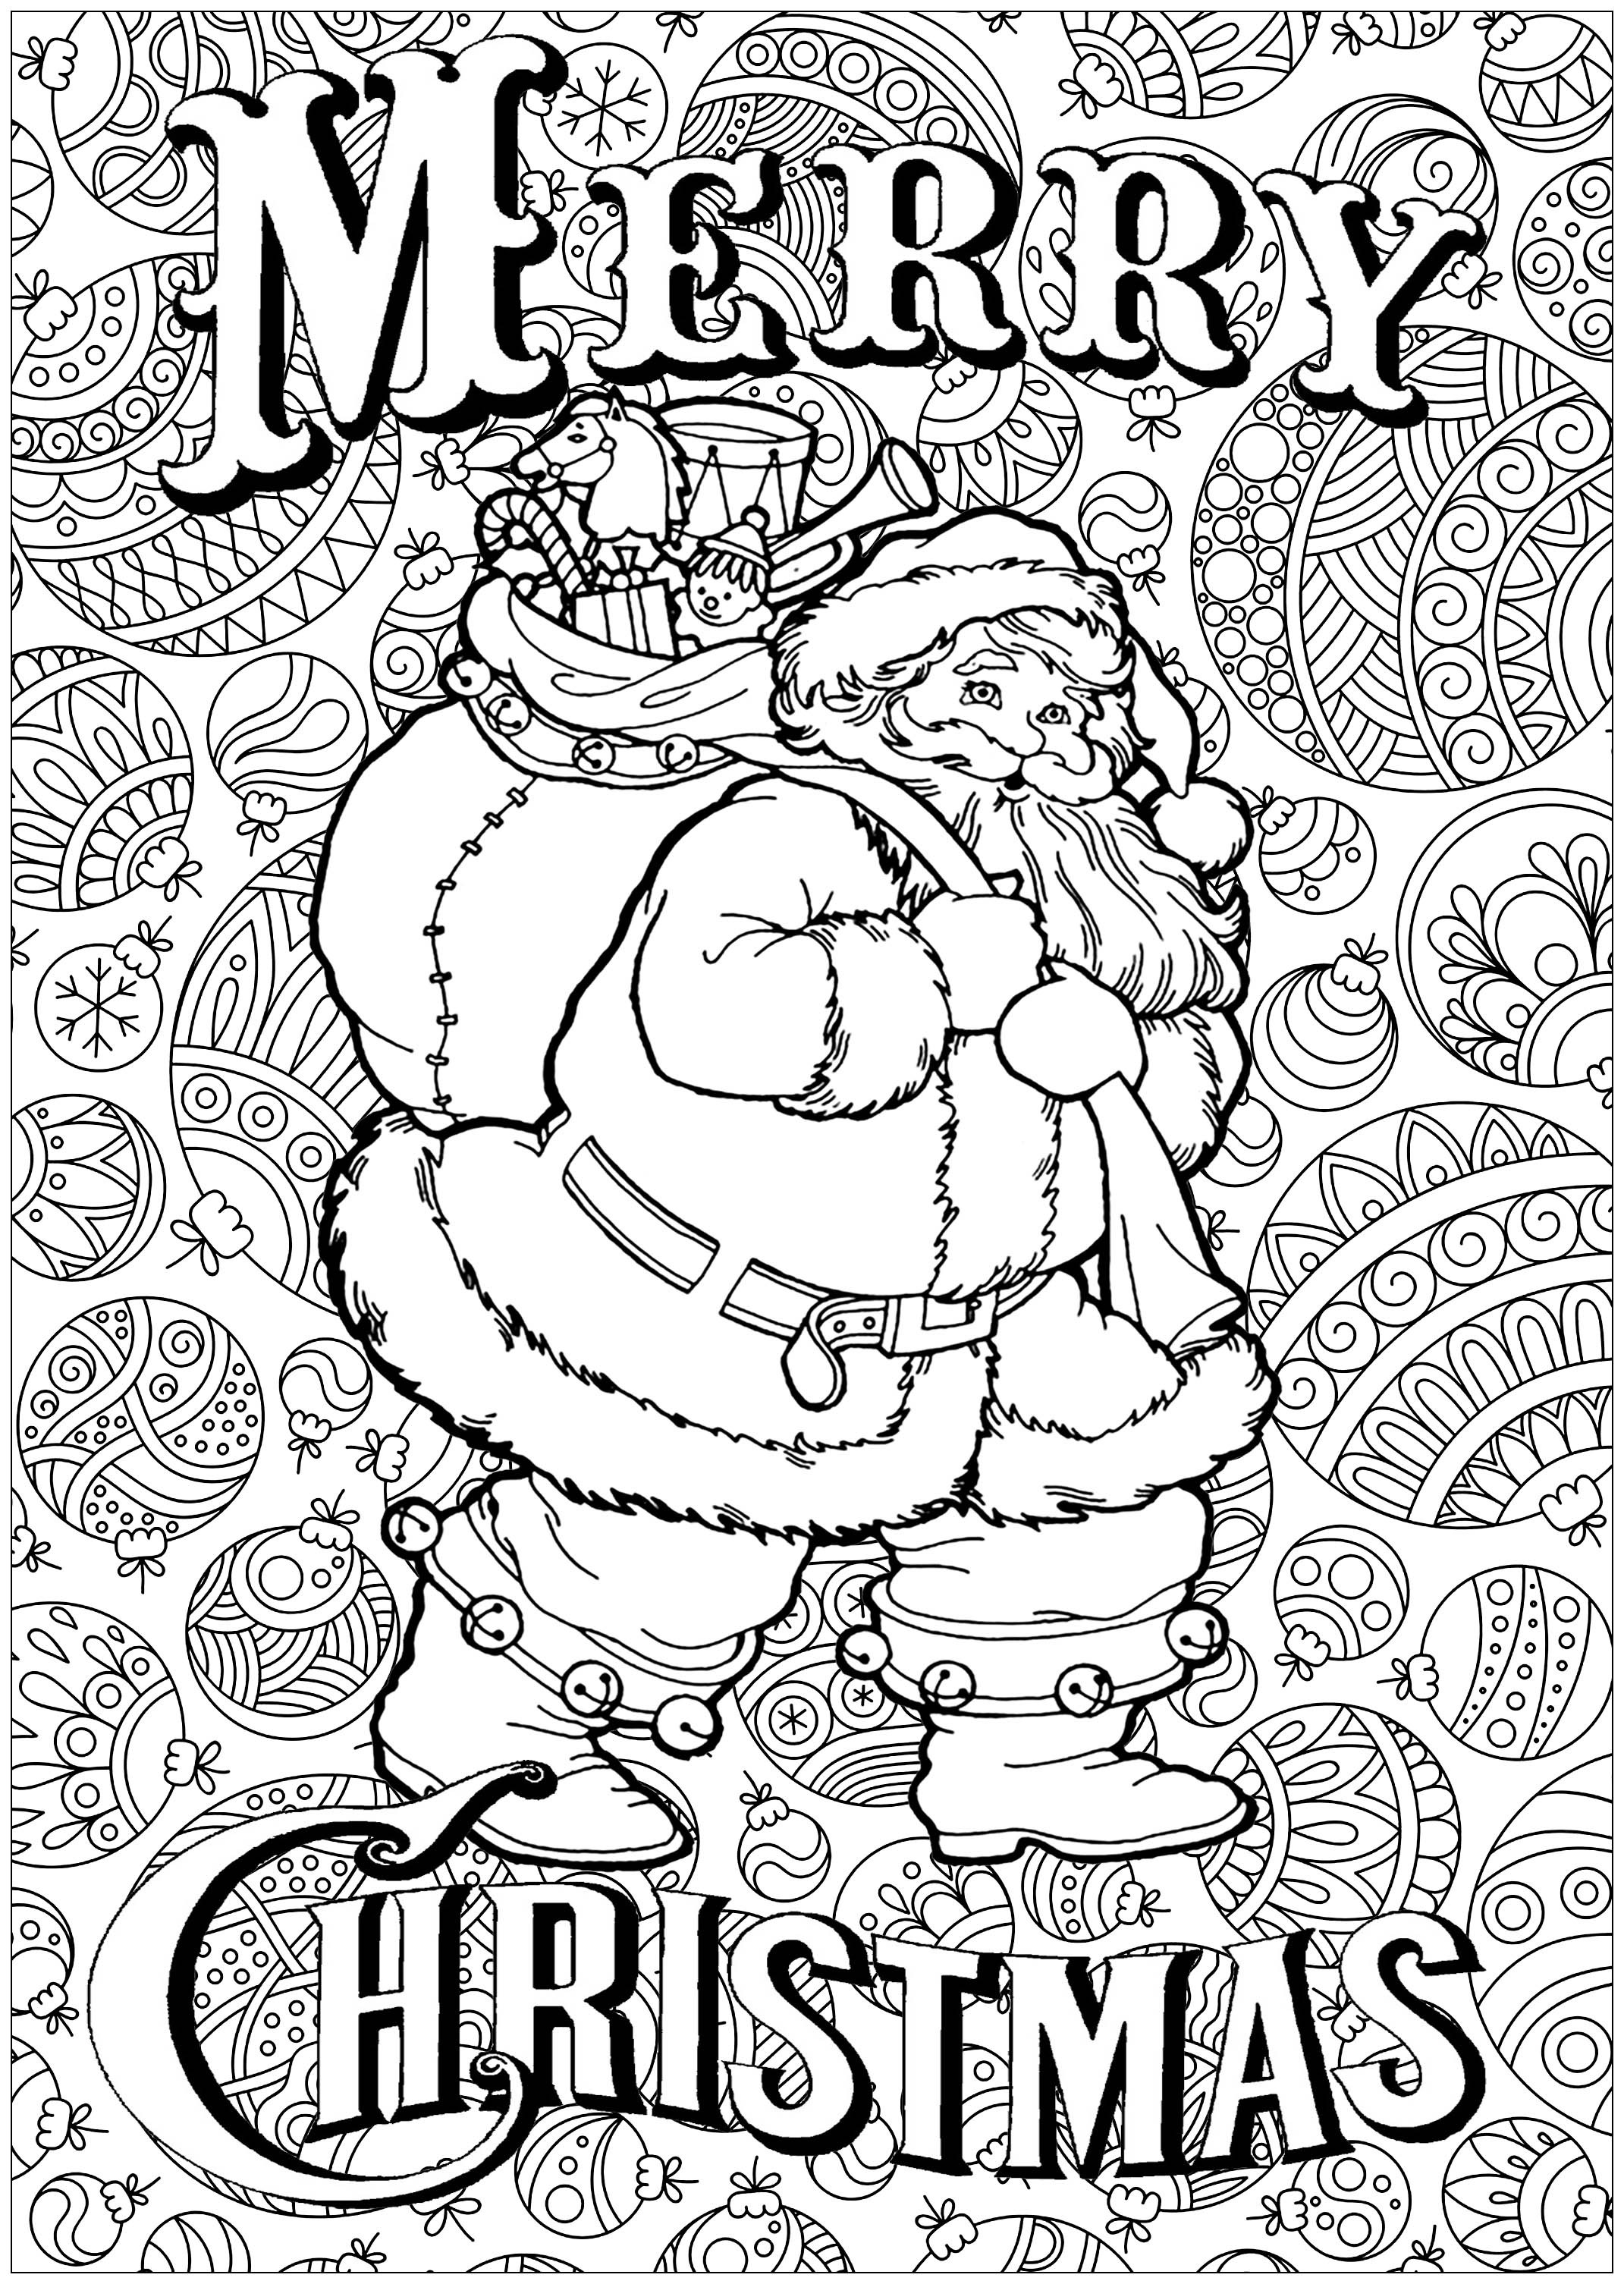 Christmas Advanced Coloring Pages With Adult Awesome For Adults Printable Image Of